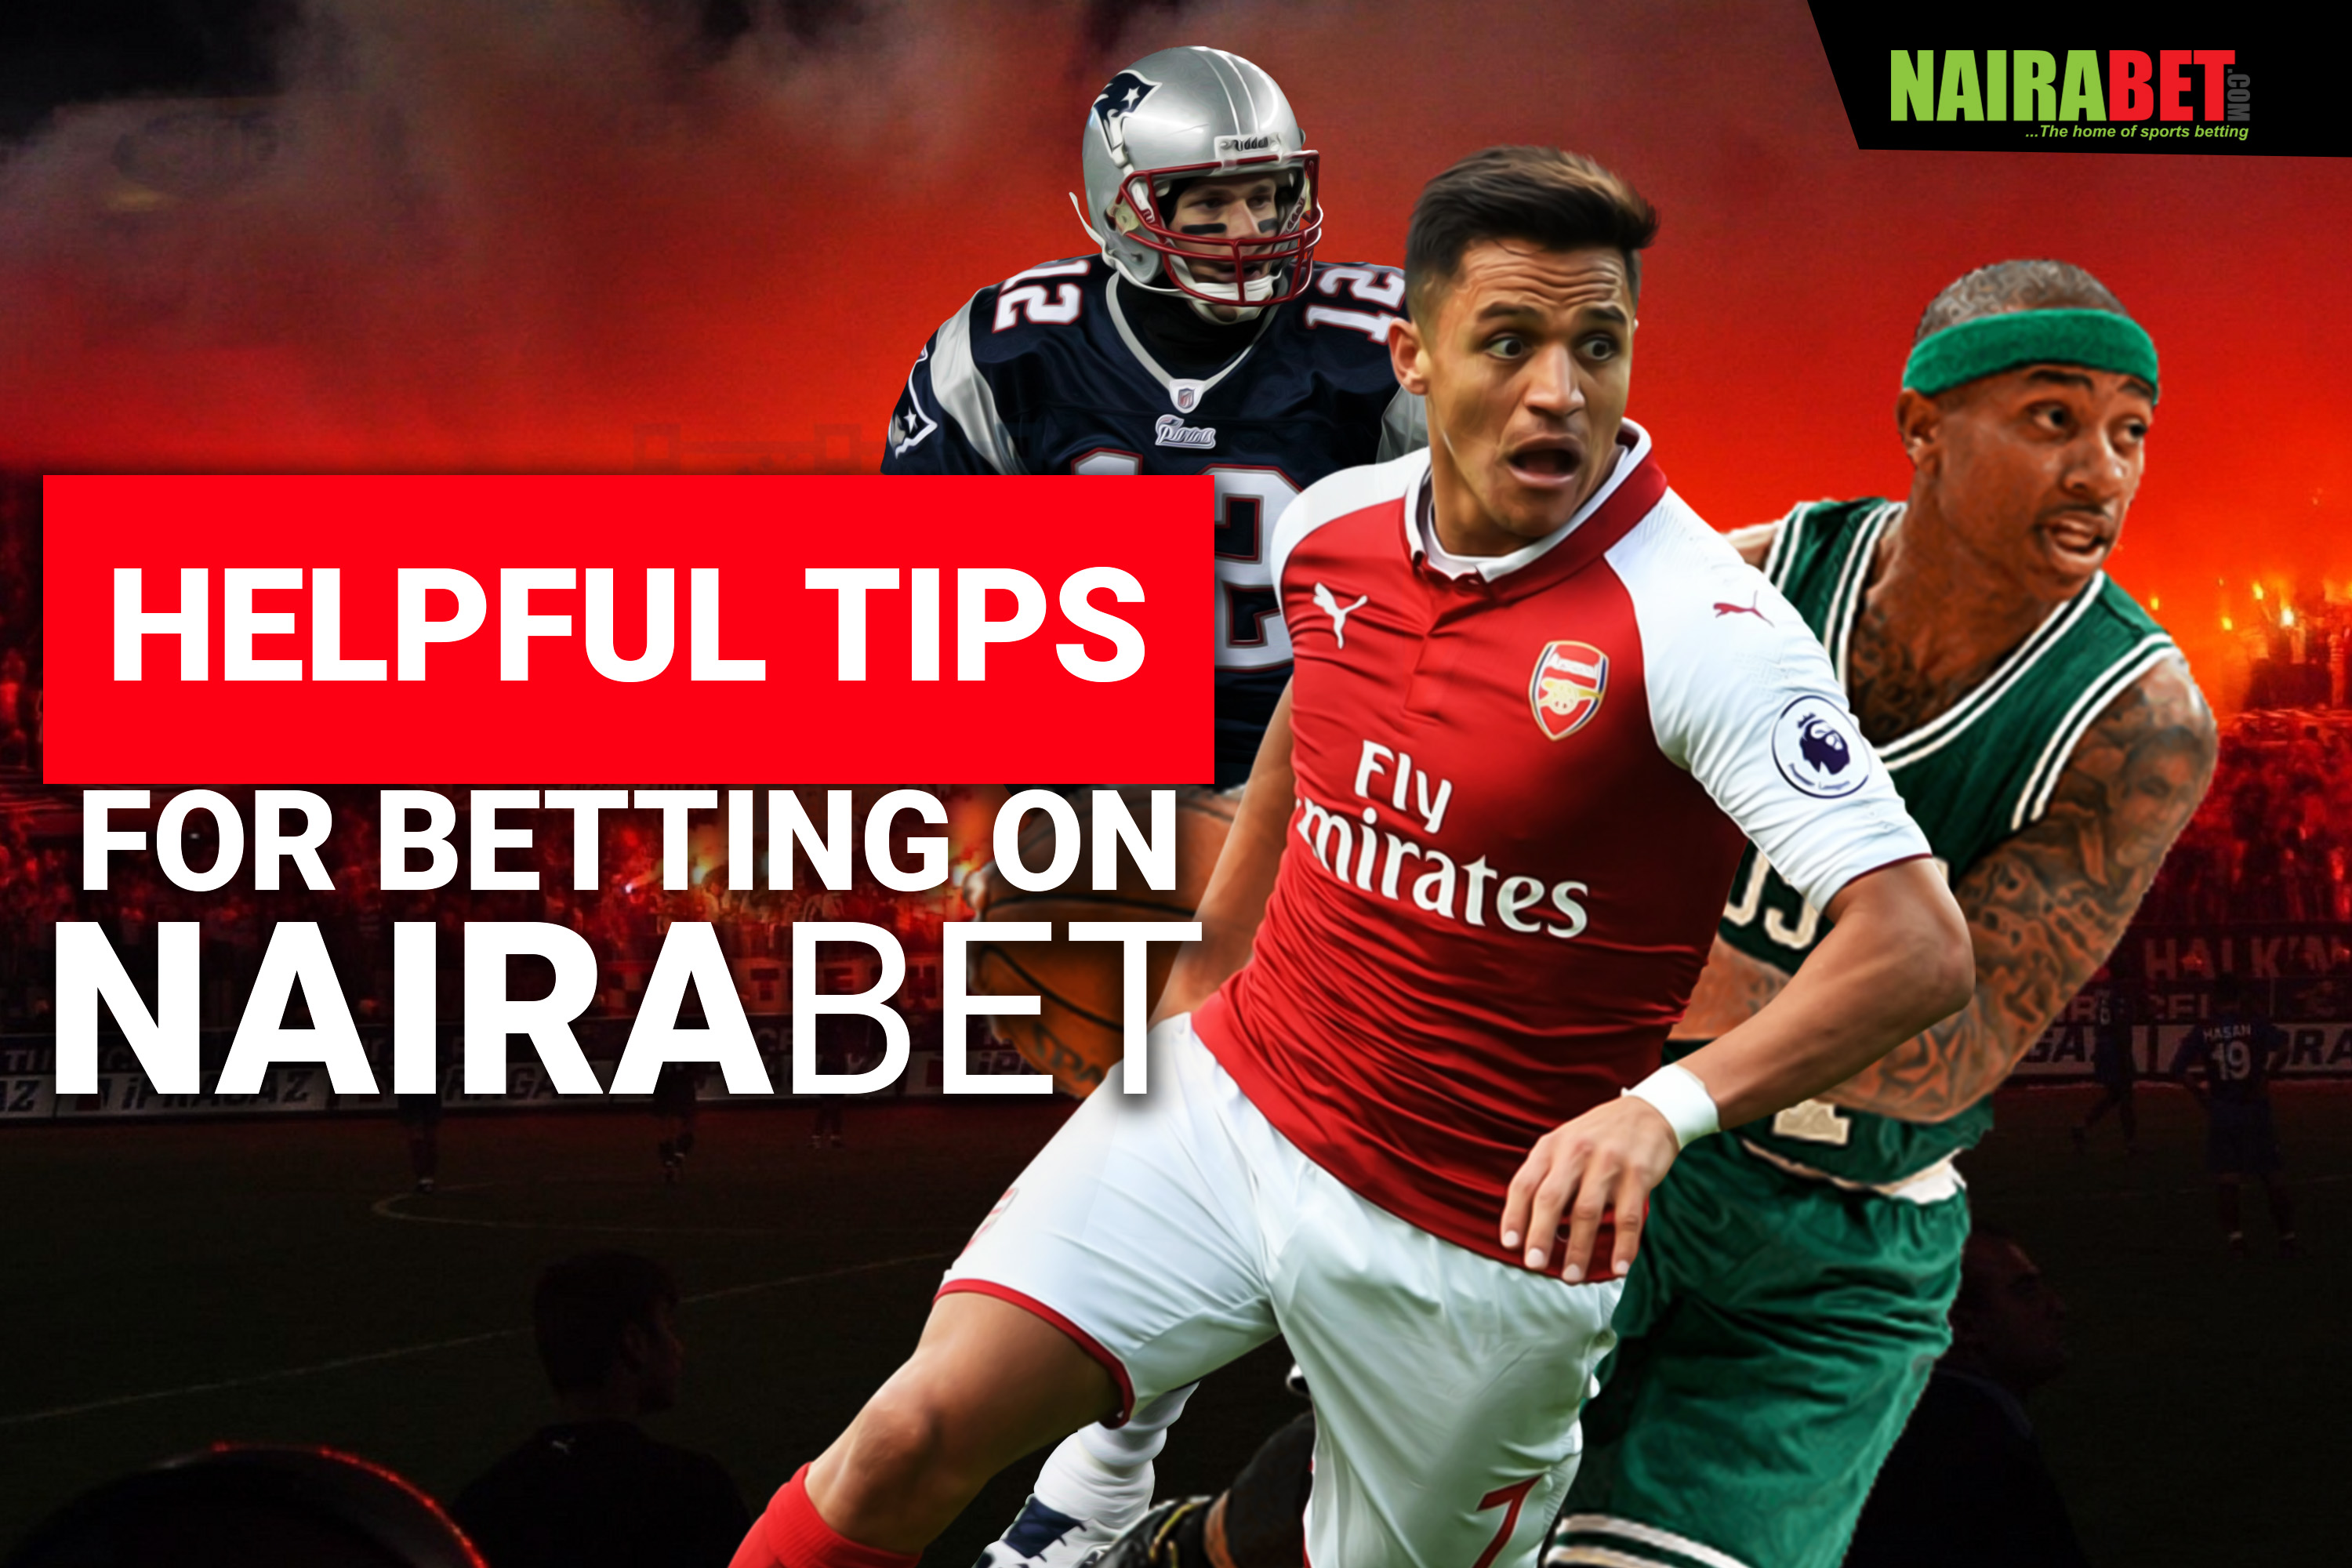 helpful betting tips